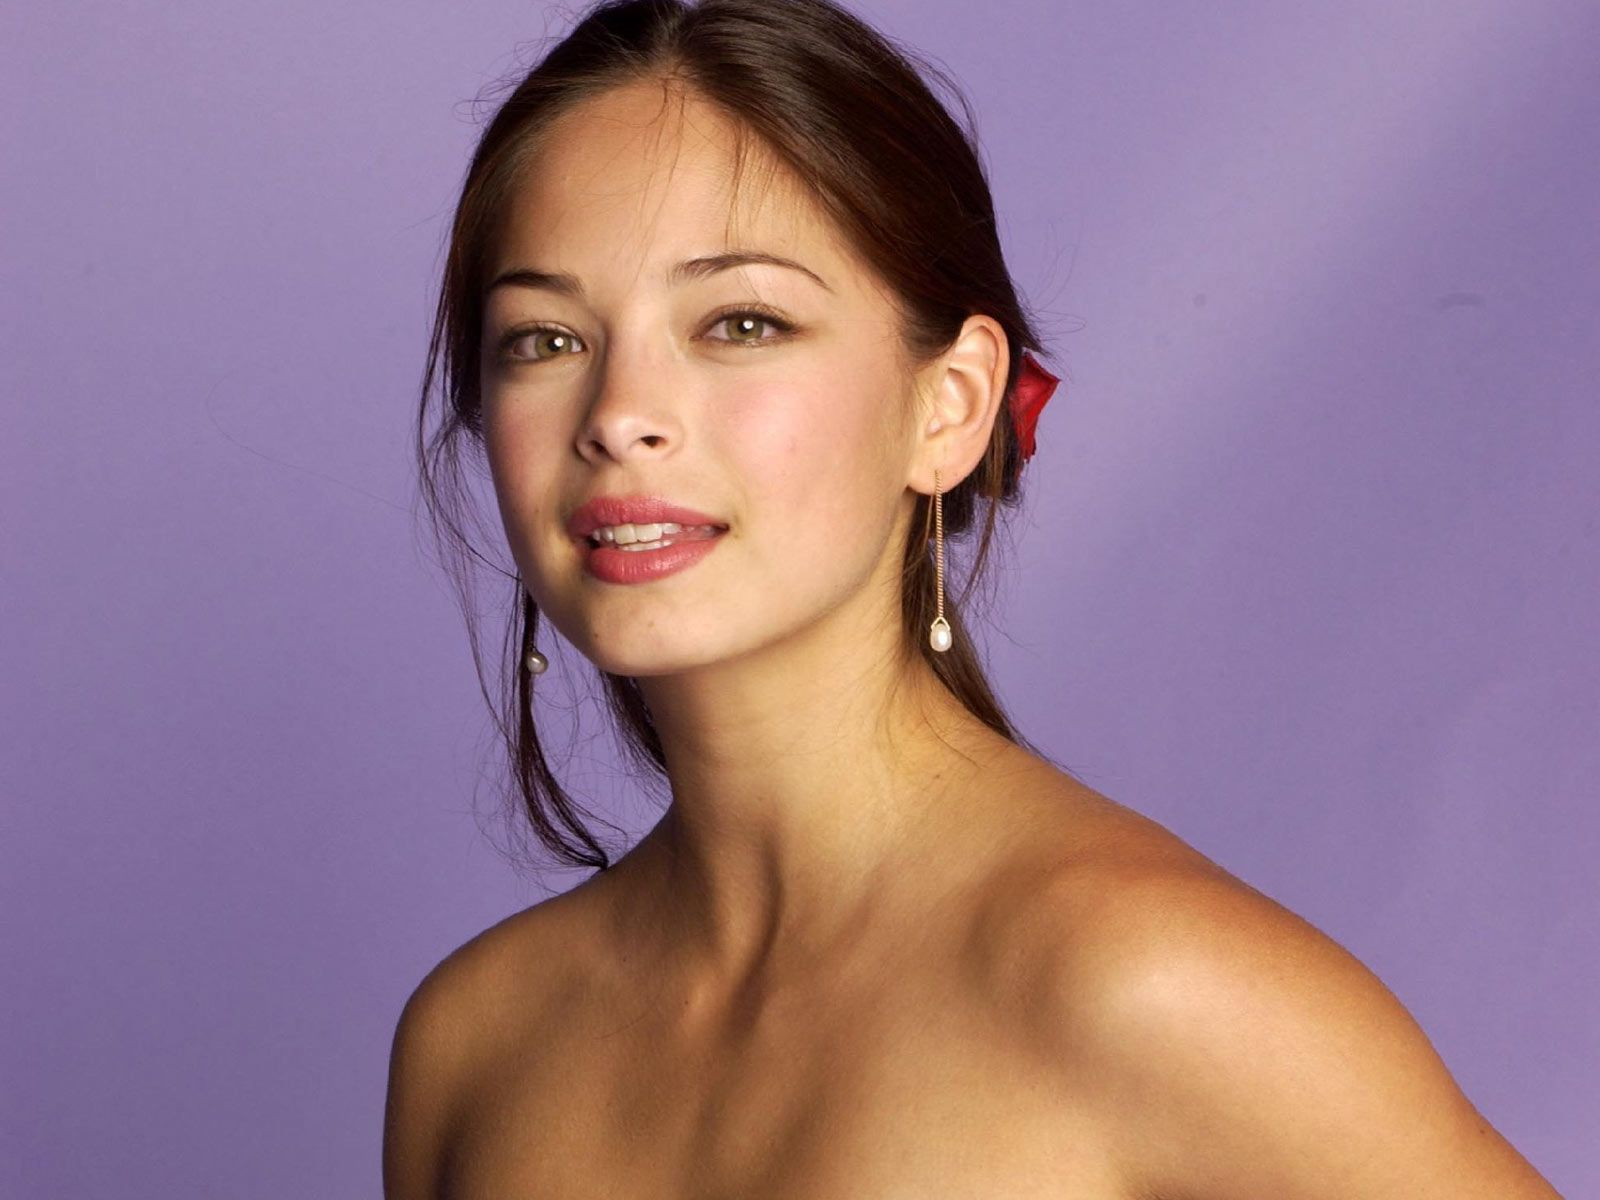 Mezclas de razas y etnias (mixed race people) Kristin-kreuk-0881